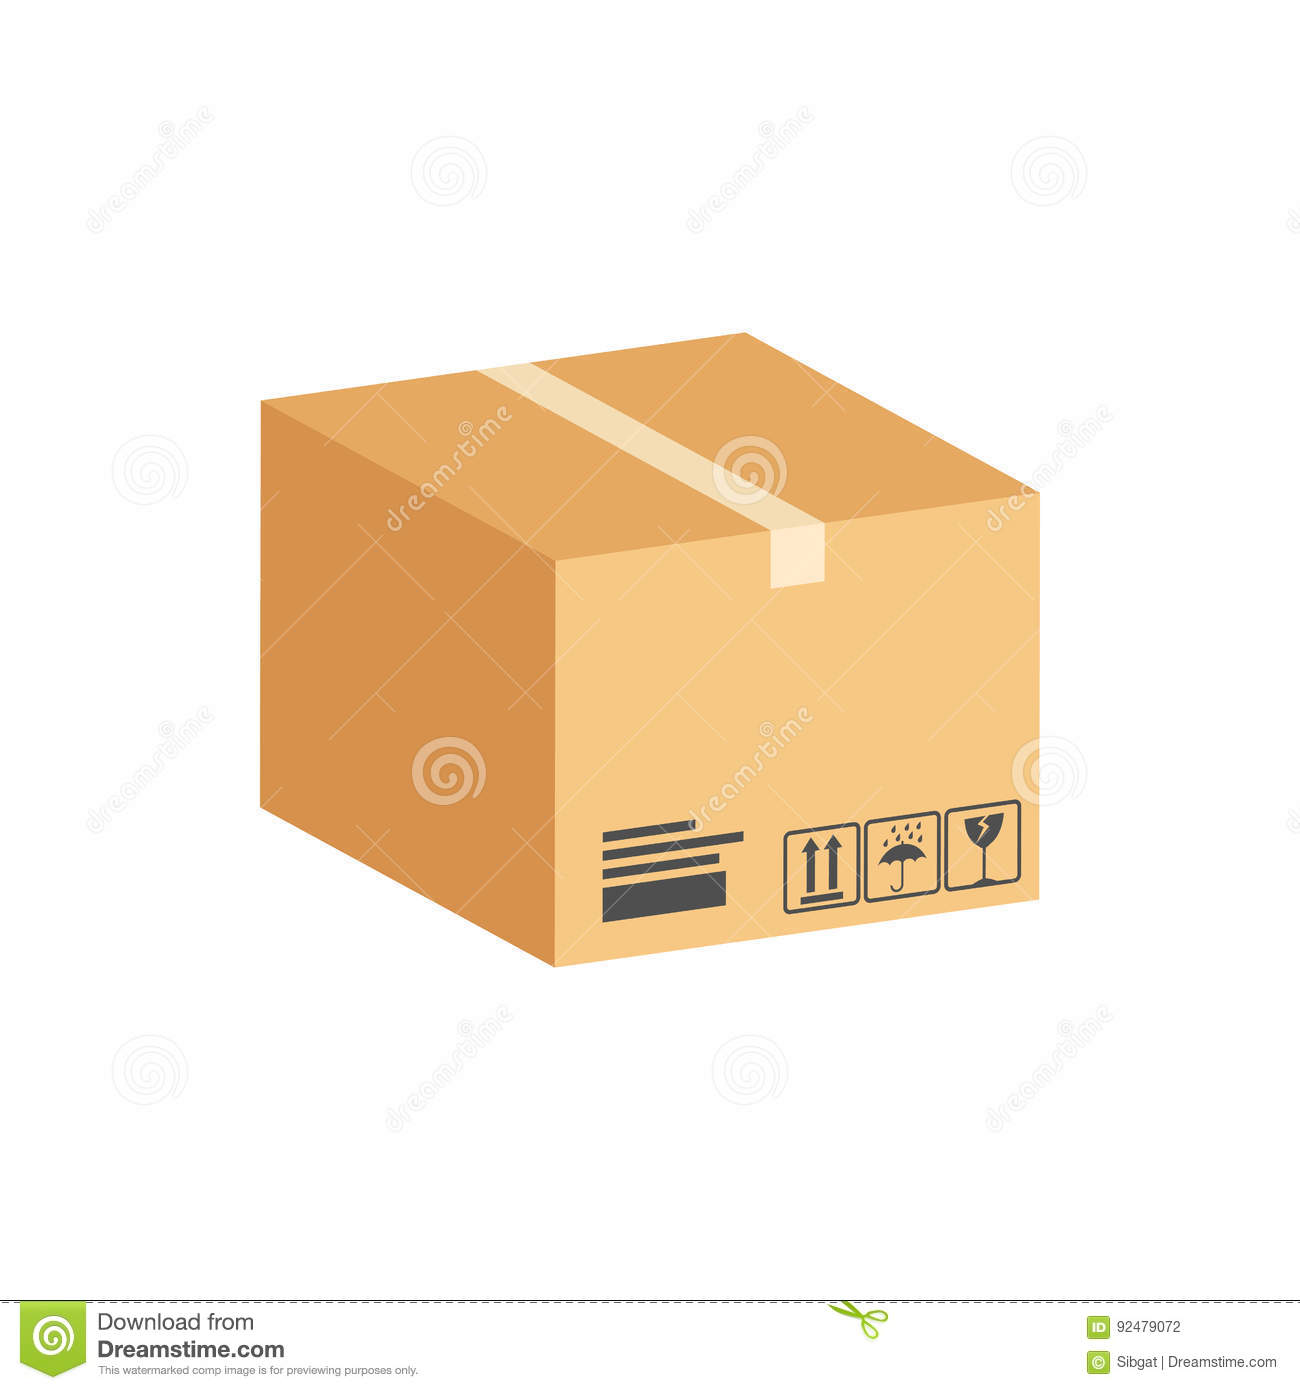 cardboard box parcel symbol flat isometric icon or logo stock